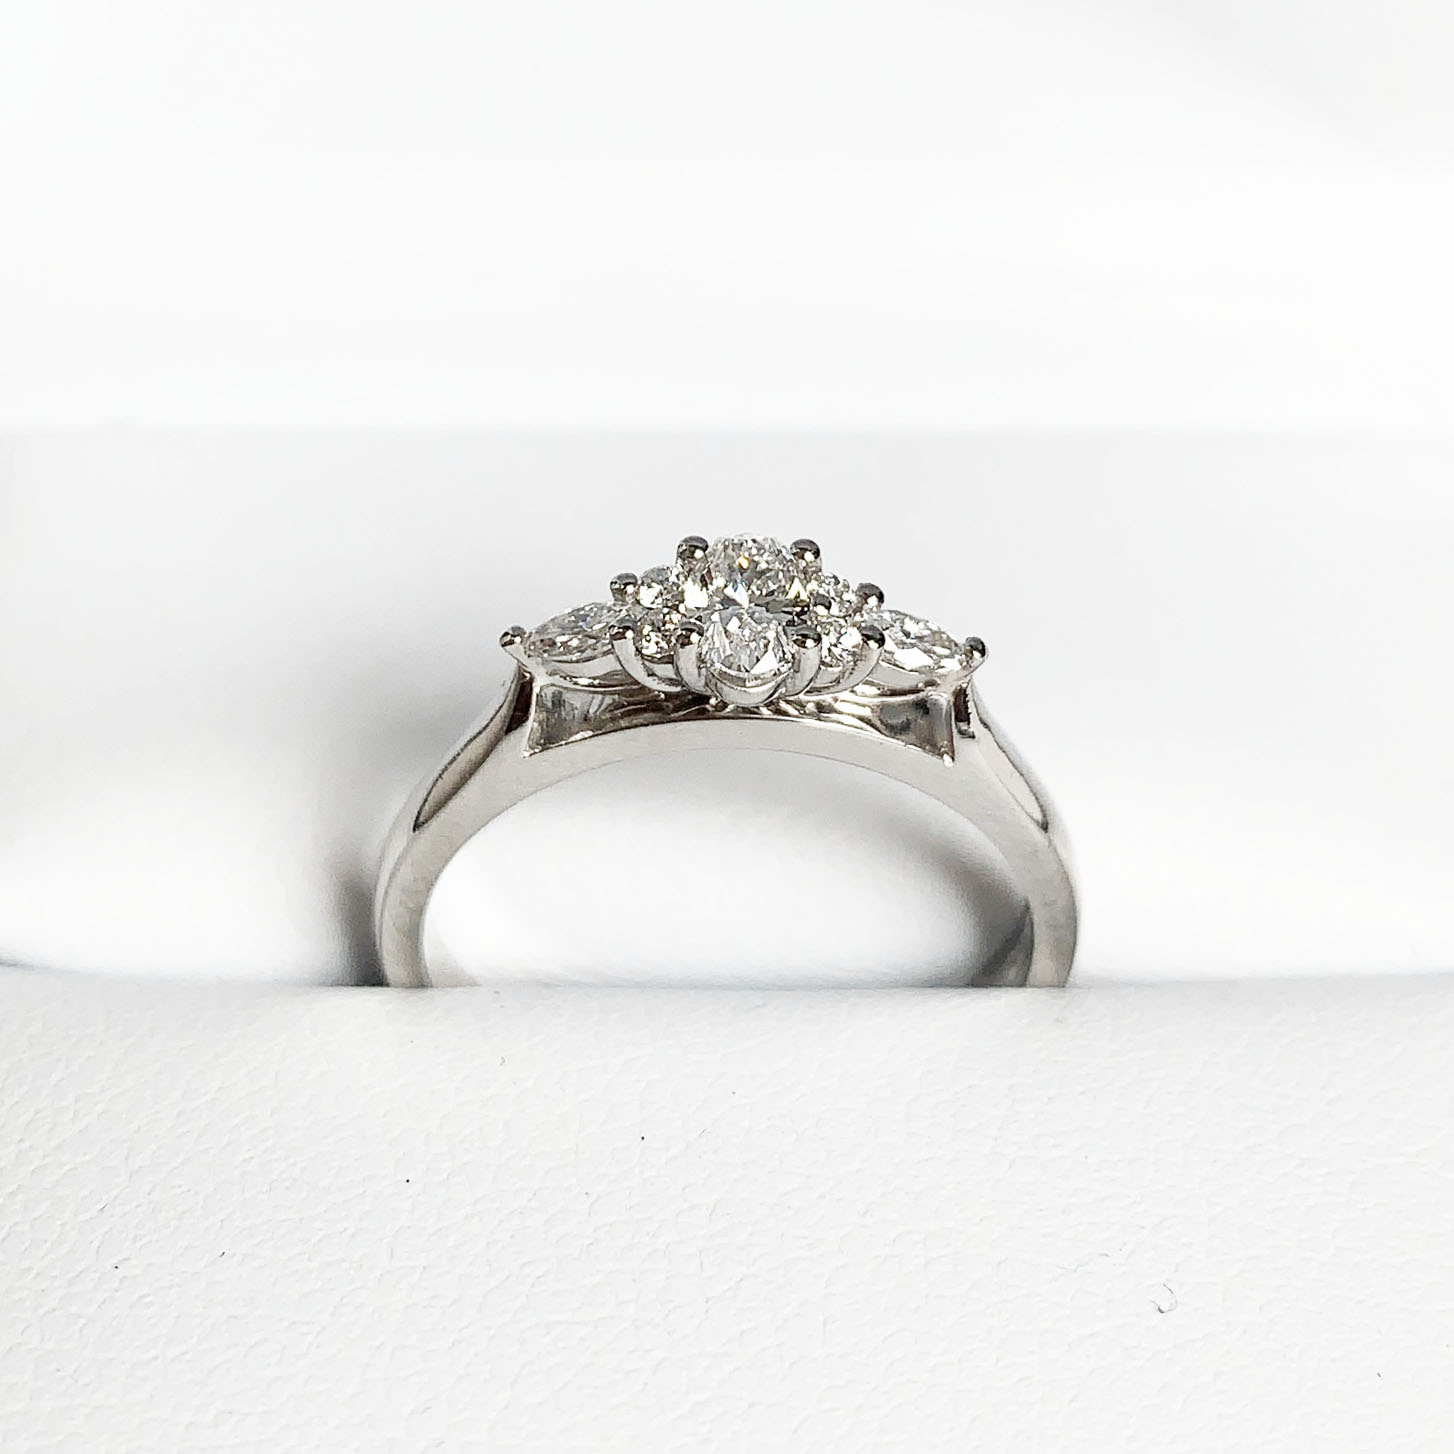 A three stone illusion engagement ring with different cut diamonds x7